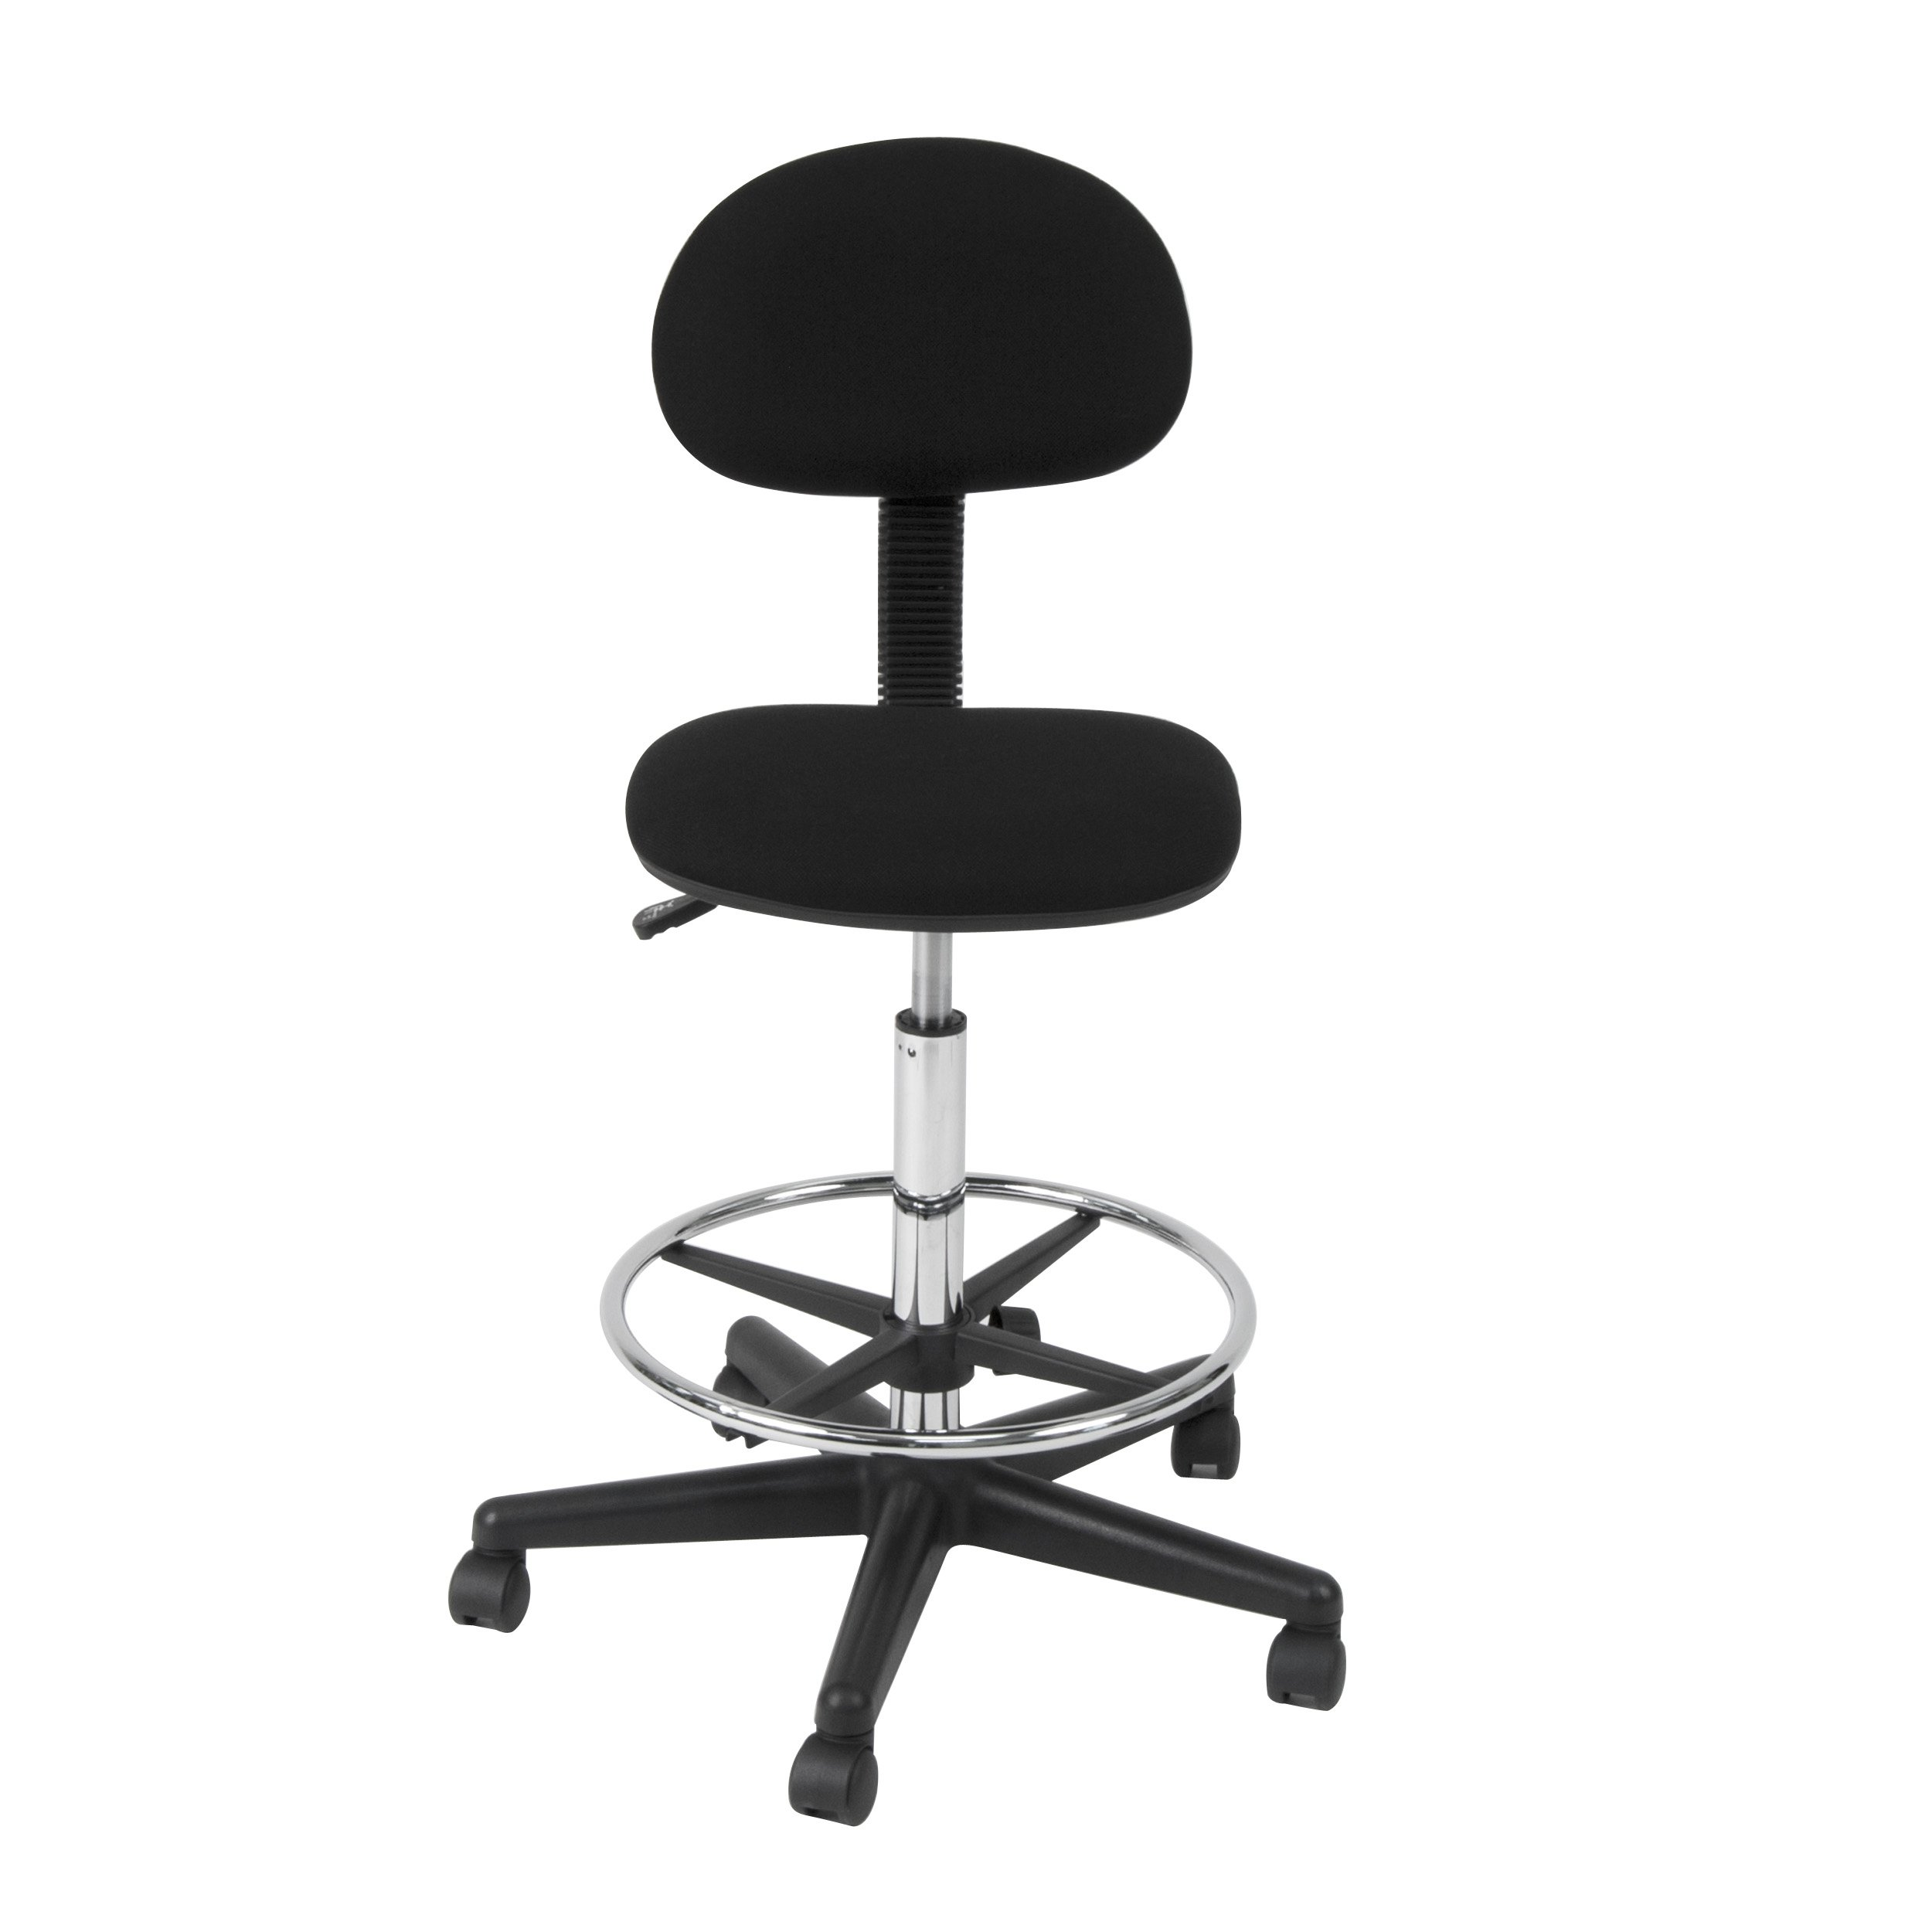 Studio Designs Drafting Chair, Black